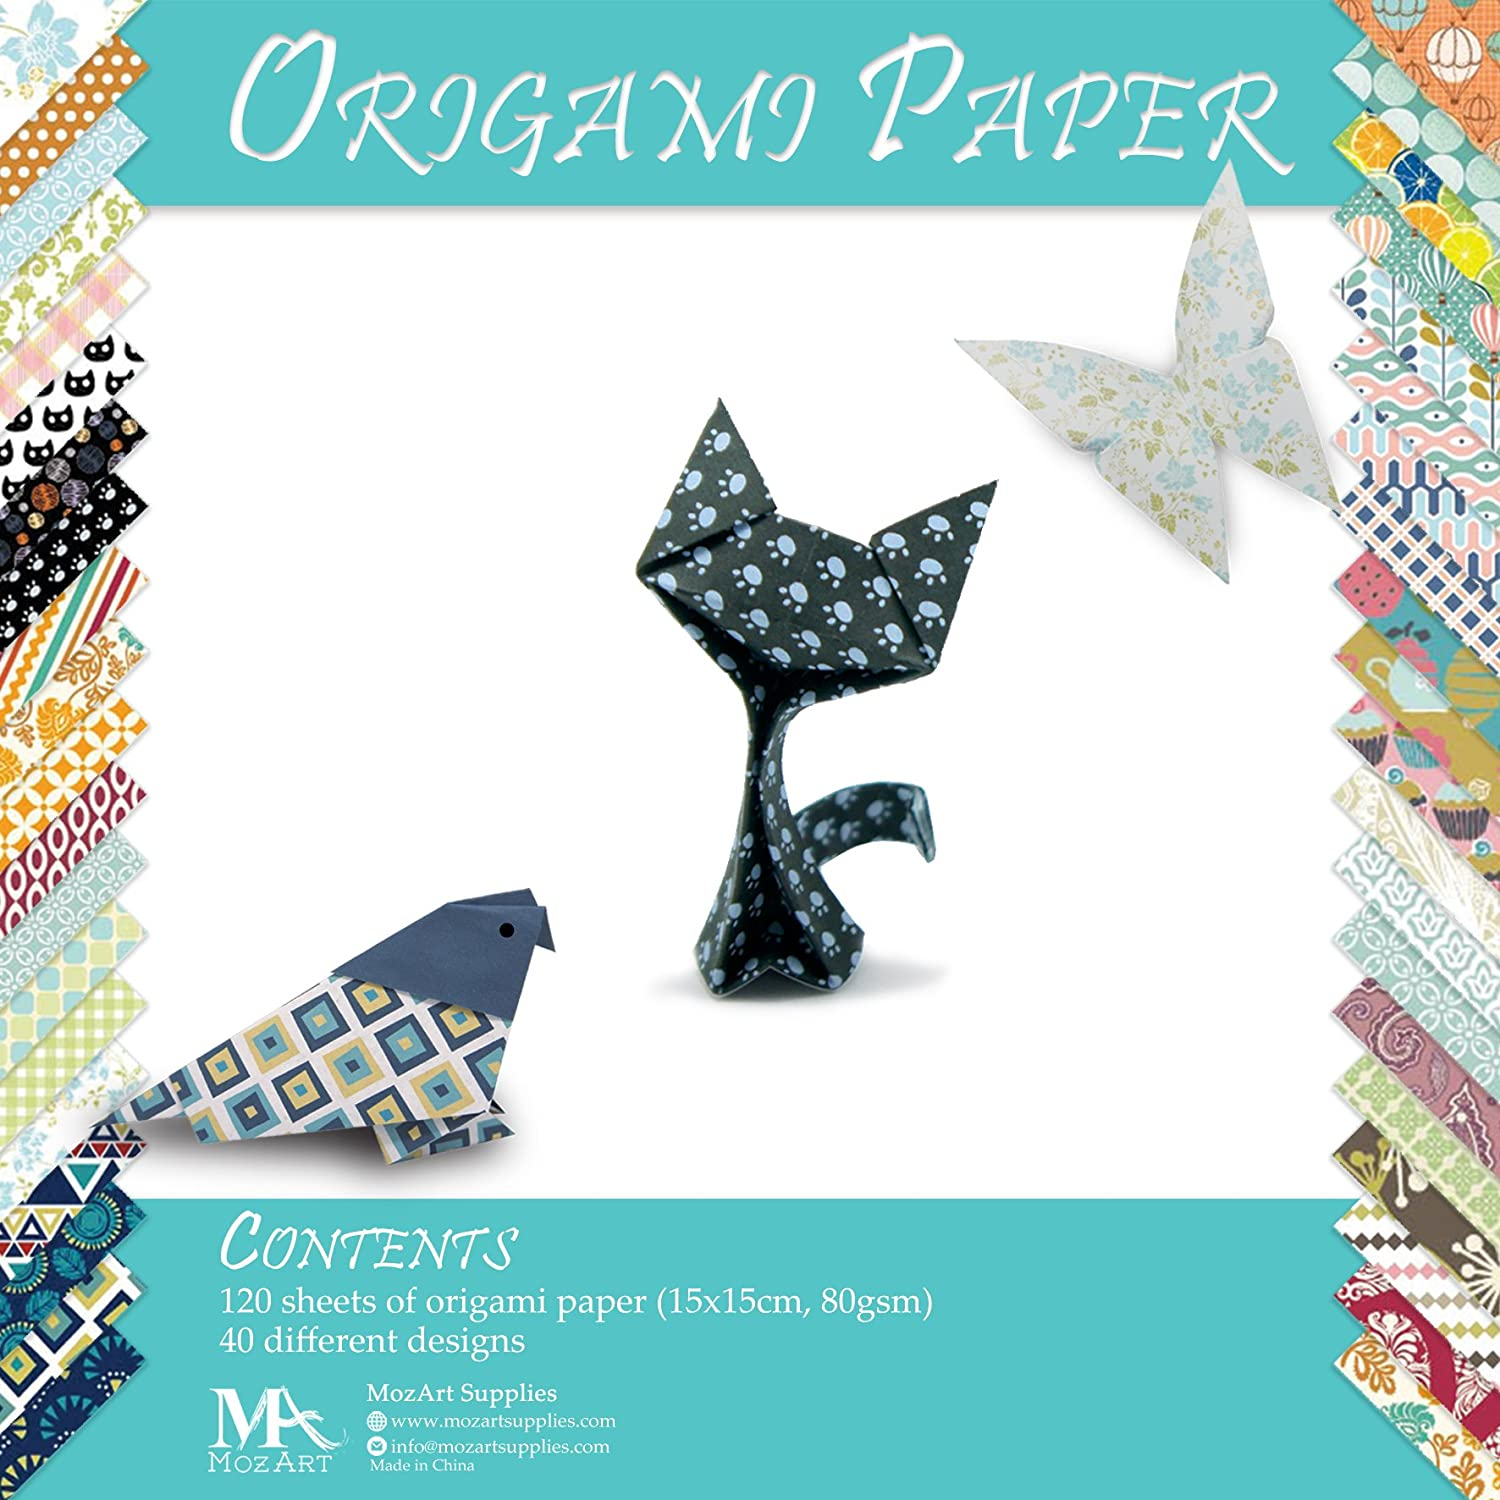 where to buy origami paper in toronto University of toronto club site  fly with origami, learn to dream university of toronto club site menu about us constitution exec team (2018-2019) coordinators (2018-2019)  come out on friday to learn how to fold jo nakashima's dragon with foil paper this week's workshop will be led by our advanced workshop coordinator, jingxiu.